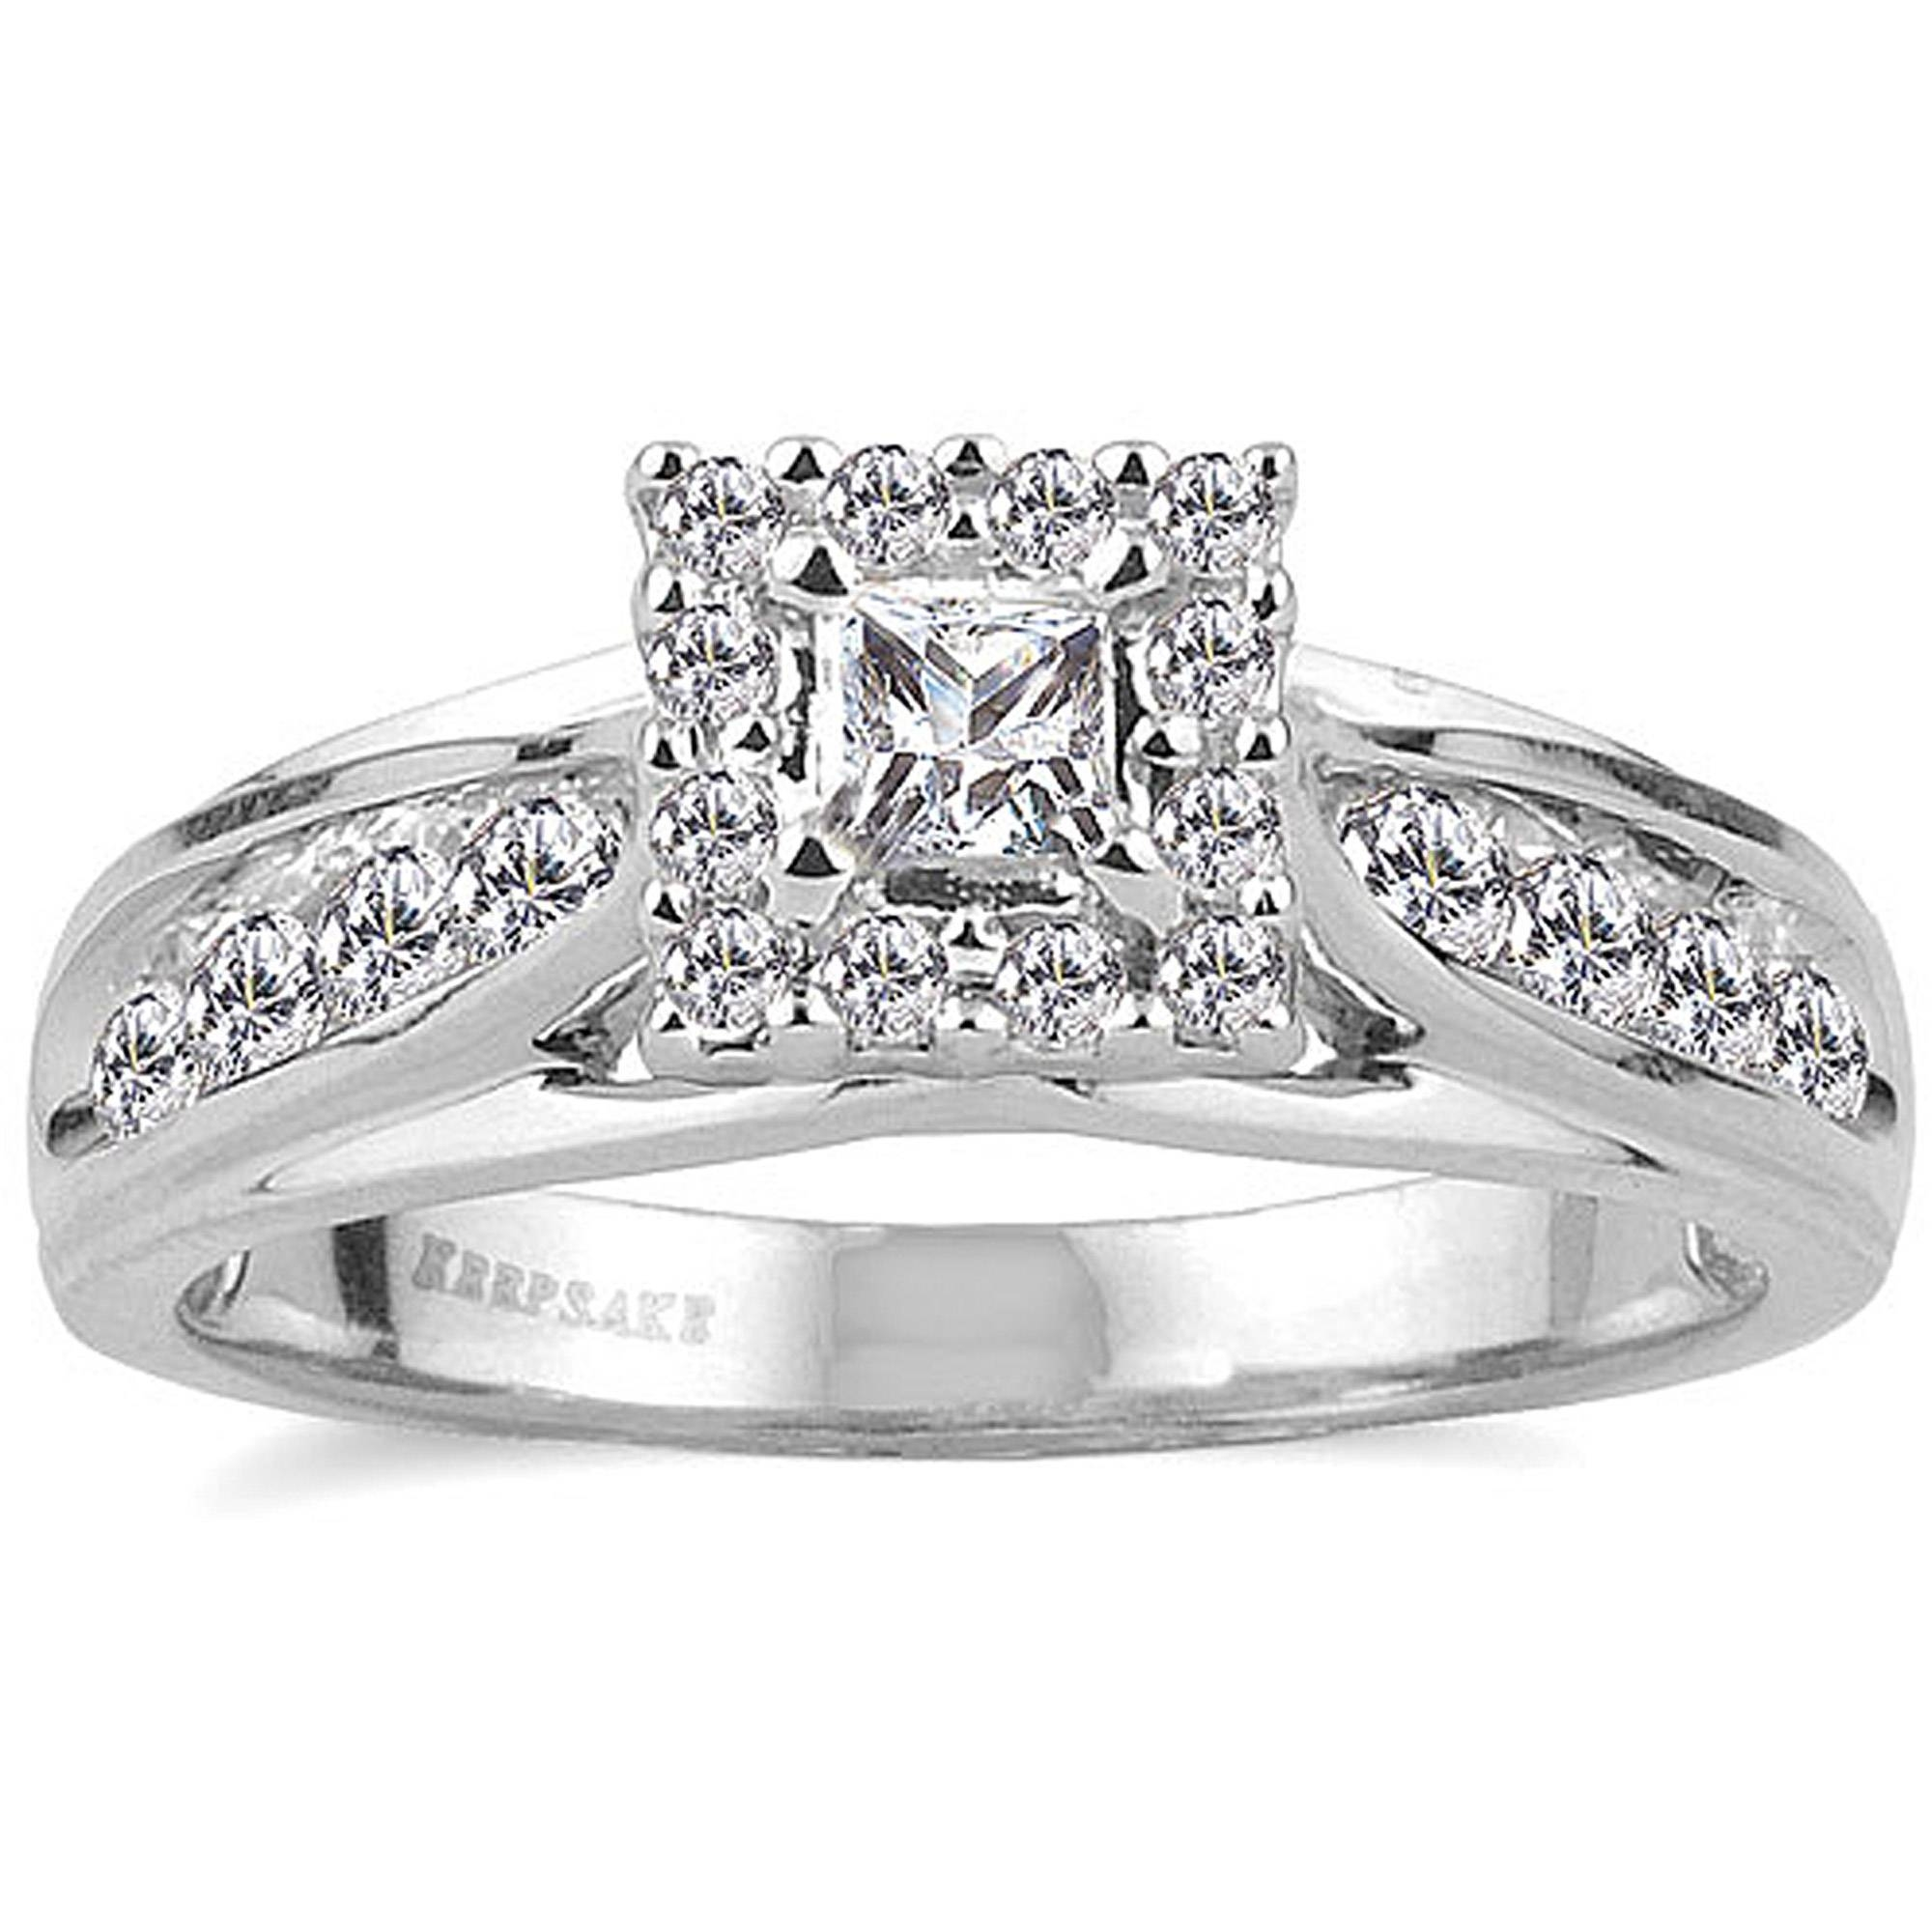 Walmart Wedding Rings | Wedding Ideas In Walmart White Gold Wedding Bands (View 4 of 15)